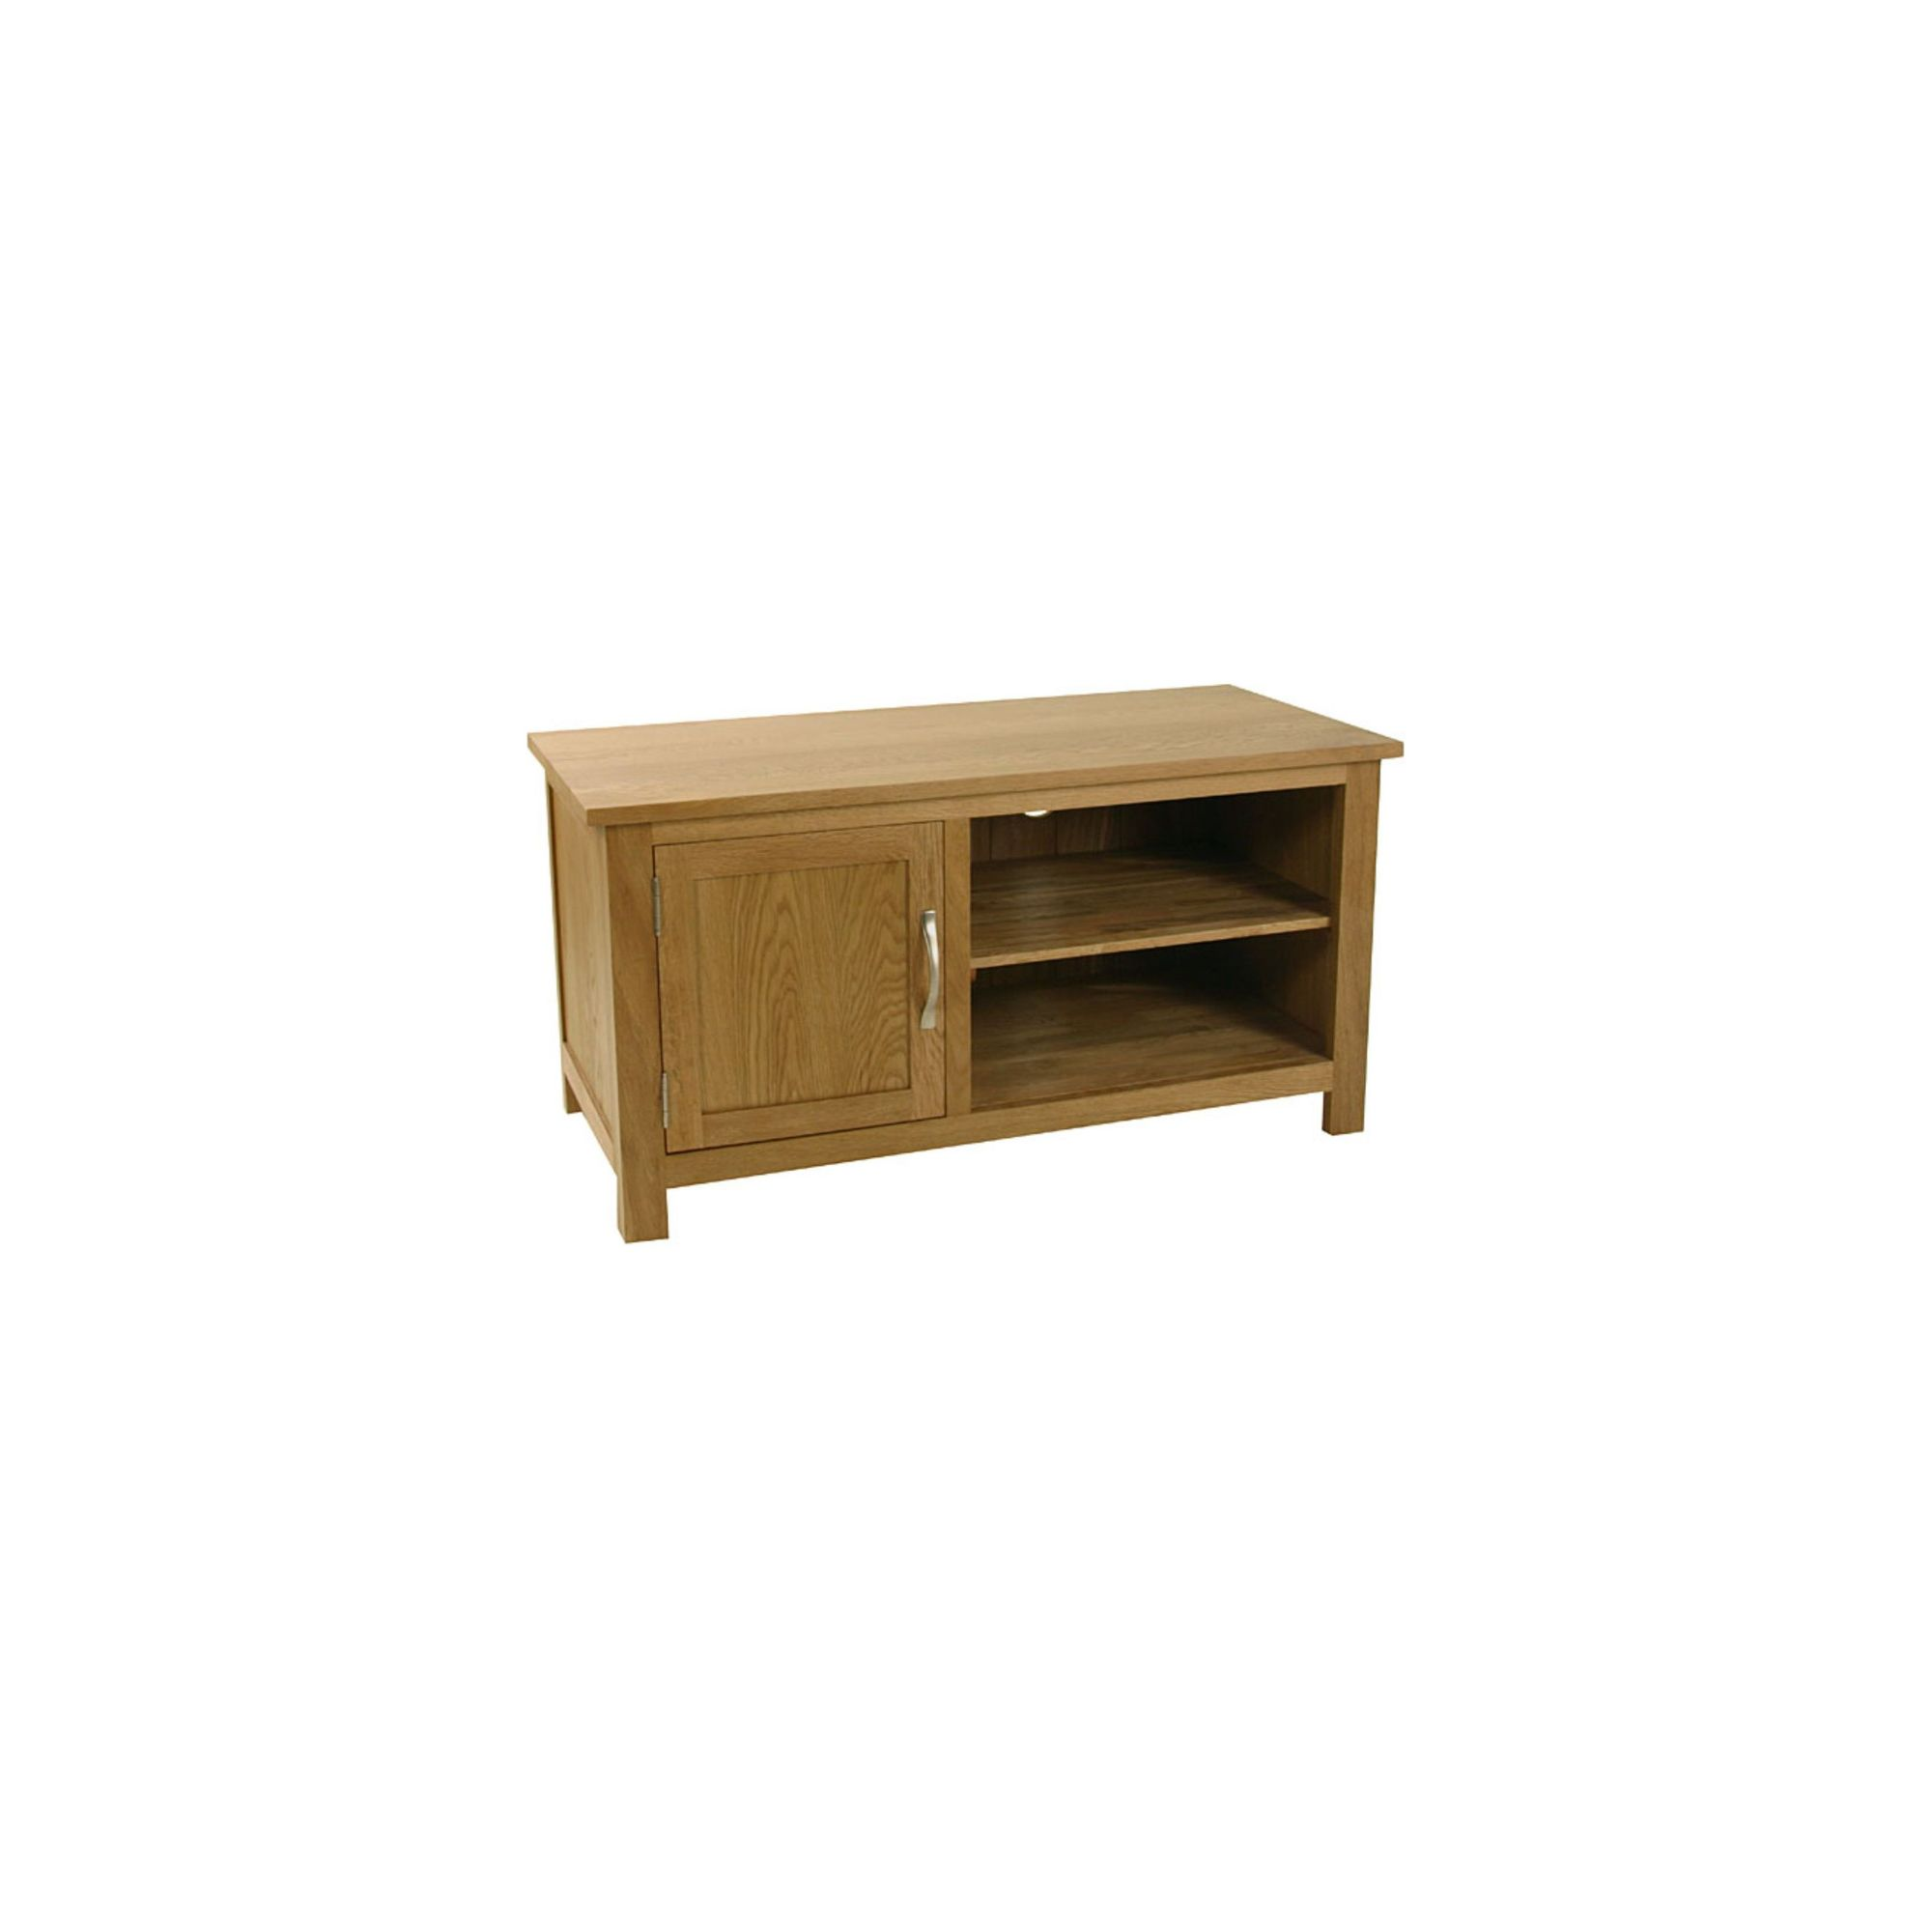 Kelburn Furniture Essentials 97cm TV Stand in Light Oak Stain and Satin Lacquer at Tesco Direct